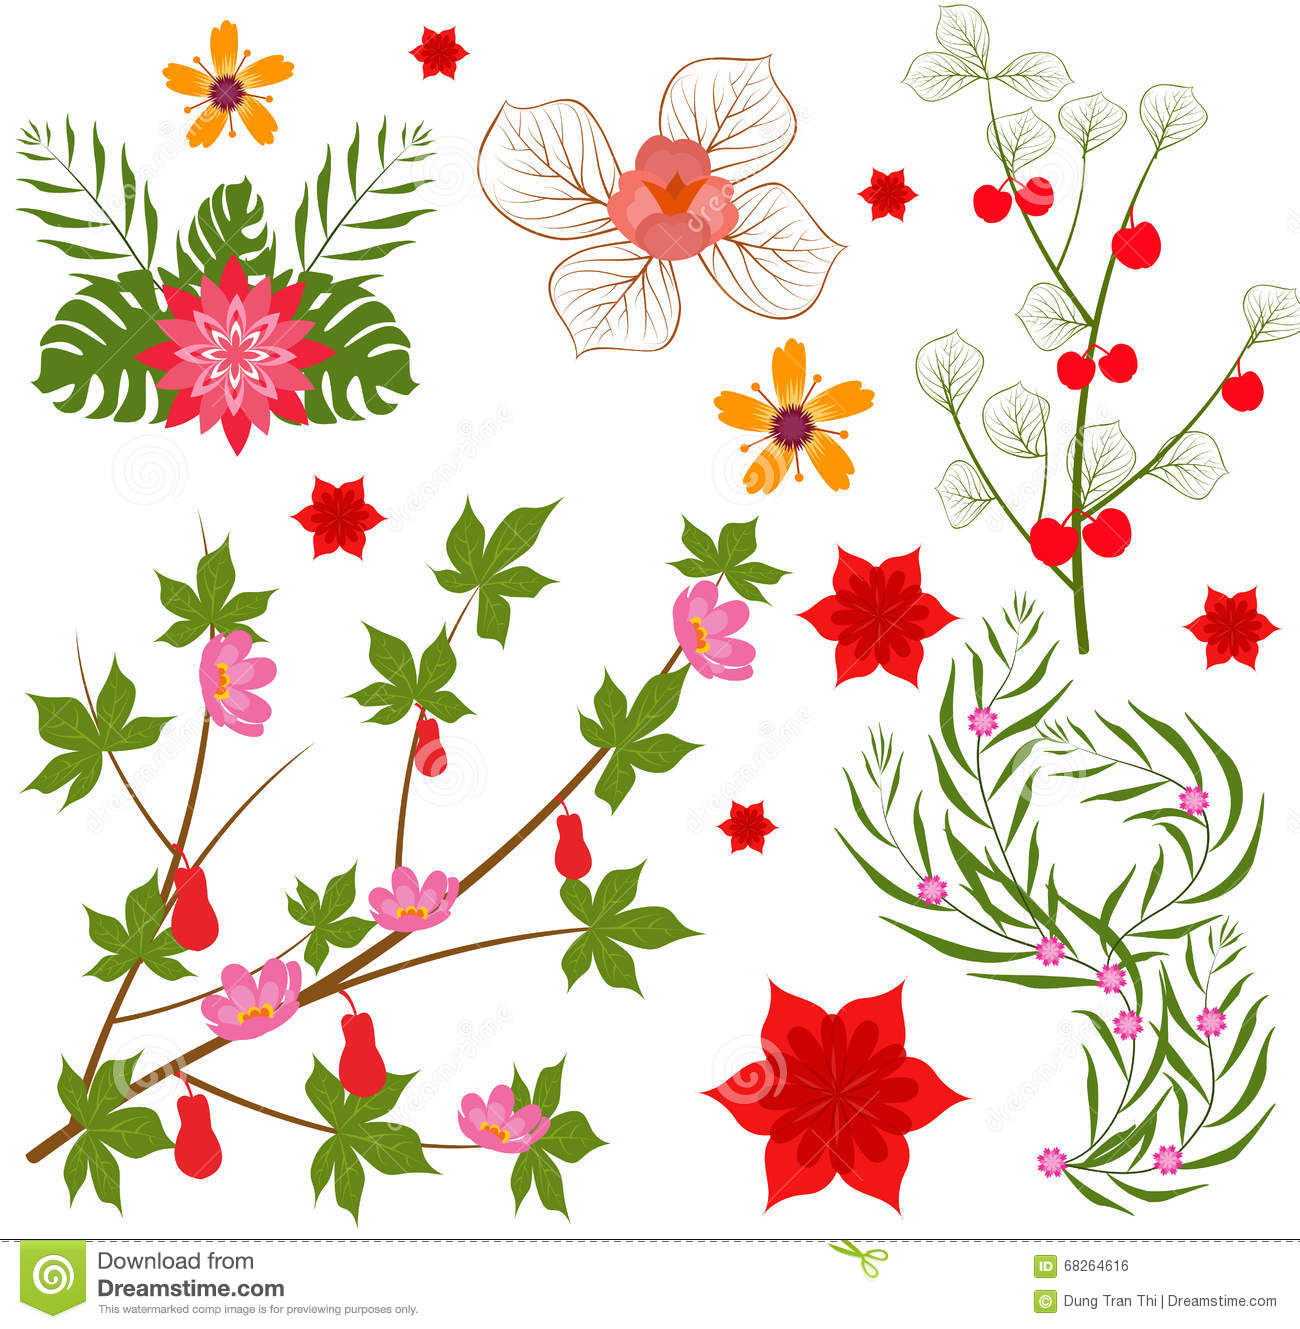 Colorful Floral Collection With Leaves And Flowers Spring Or Summer